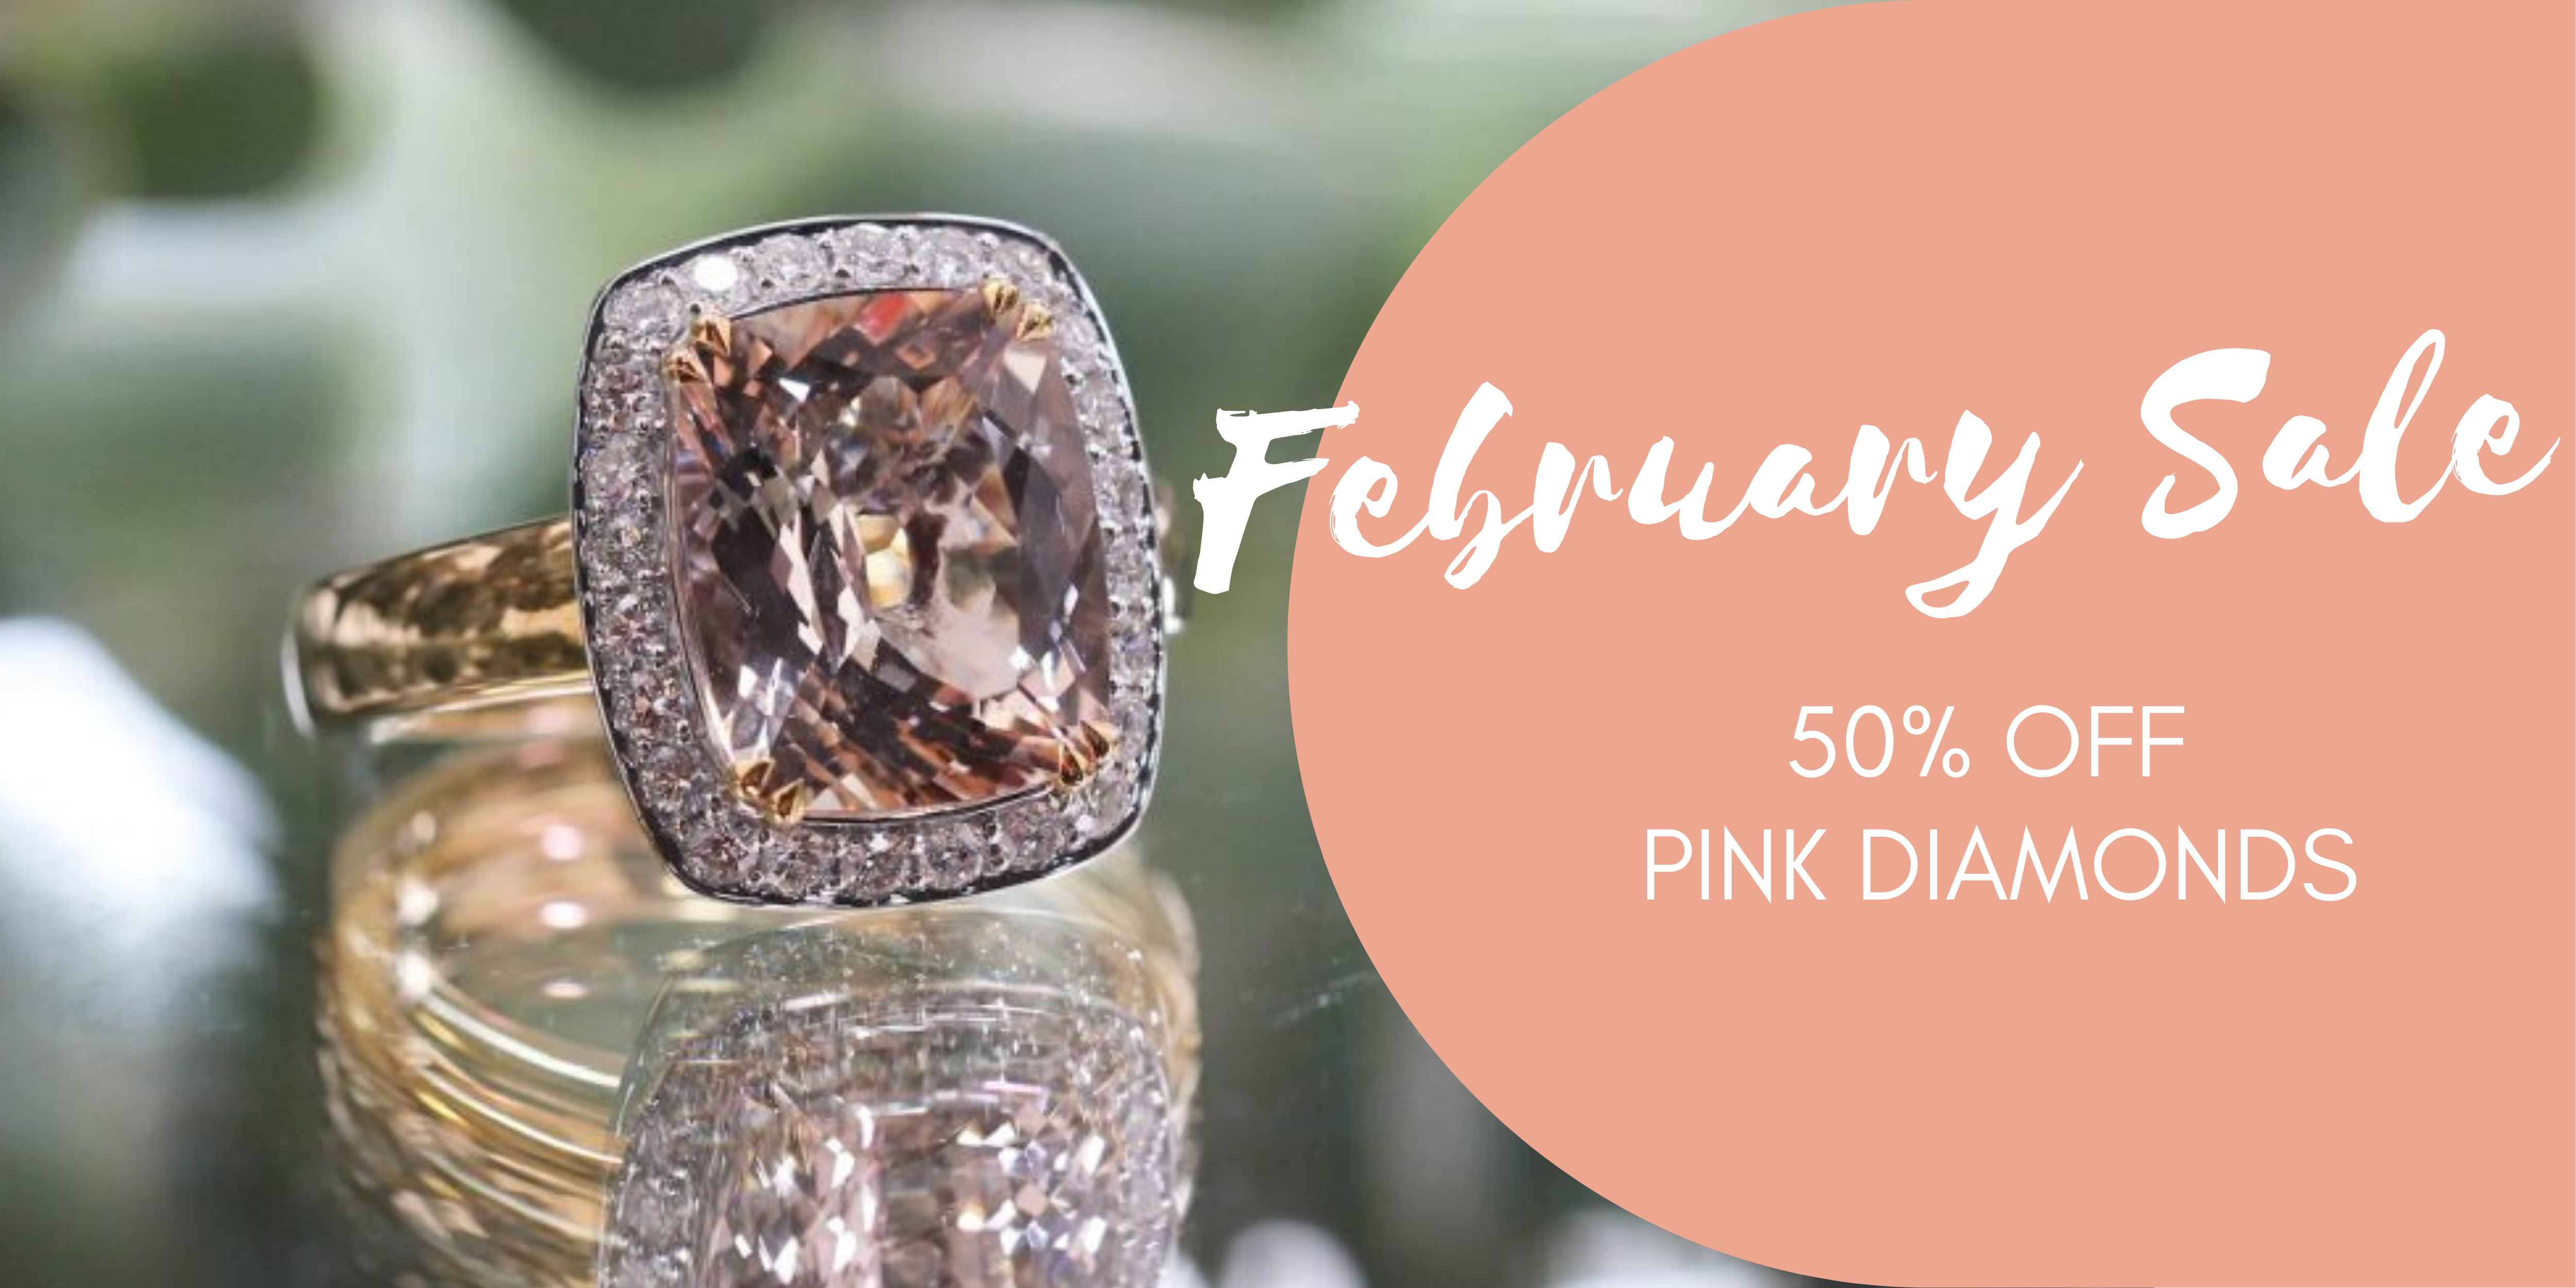 clayfield jewellery 50% off pink diamonds